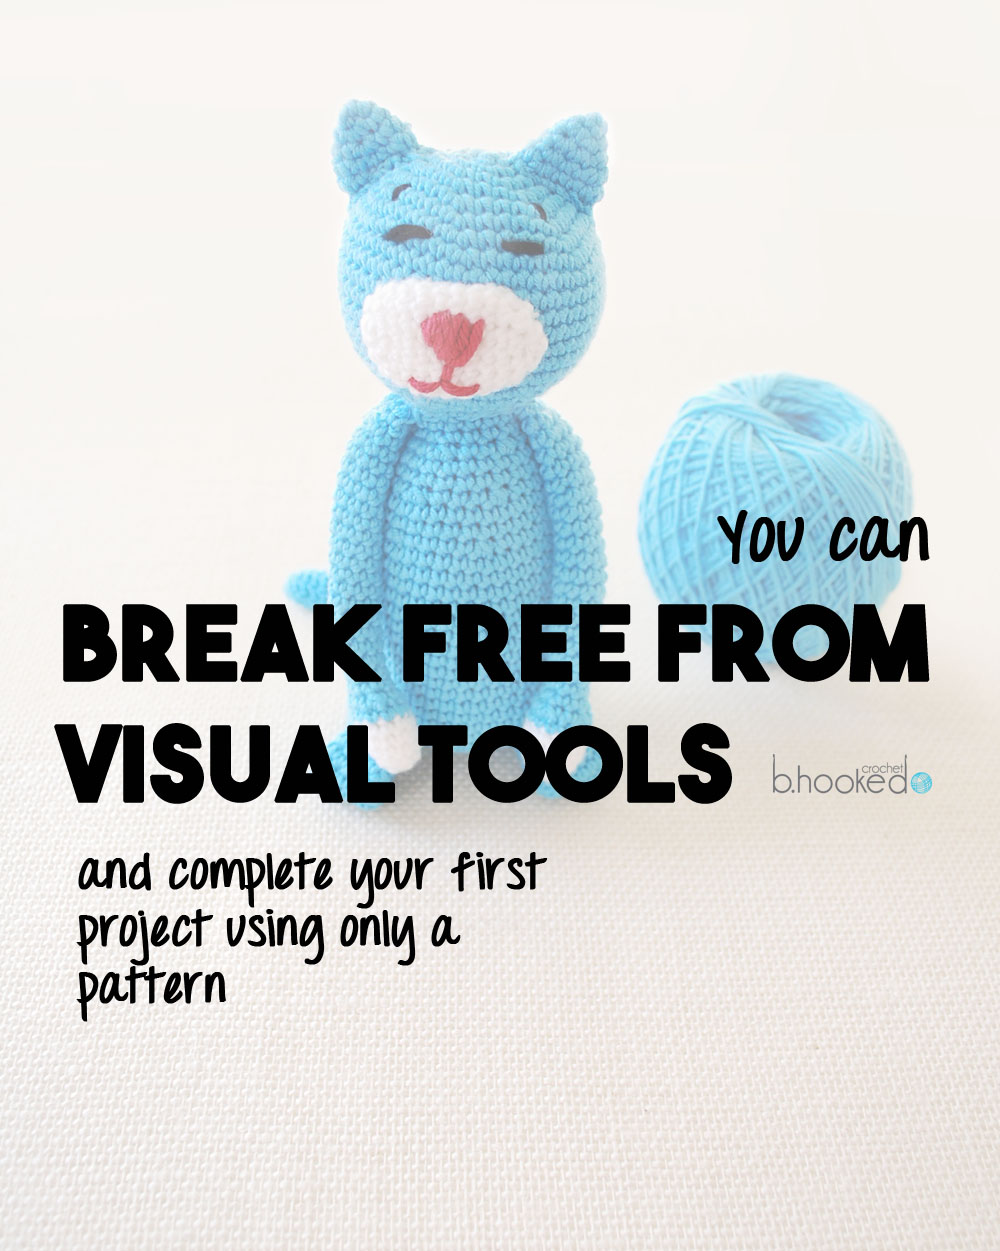 Crochet Patterns Visual : How I Broke Free From the Visual Tools and Completed My First Pattern ...